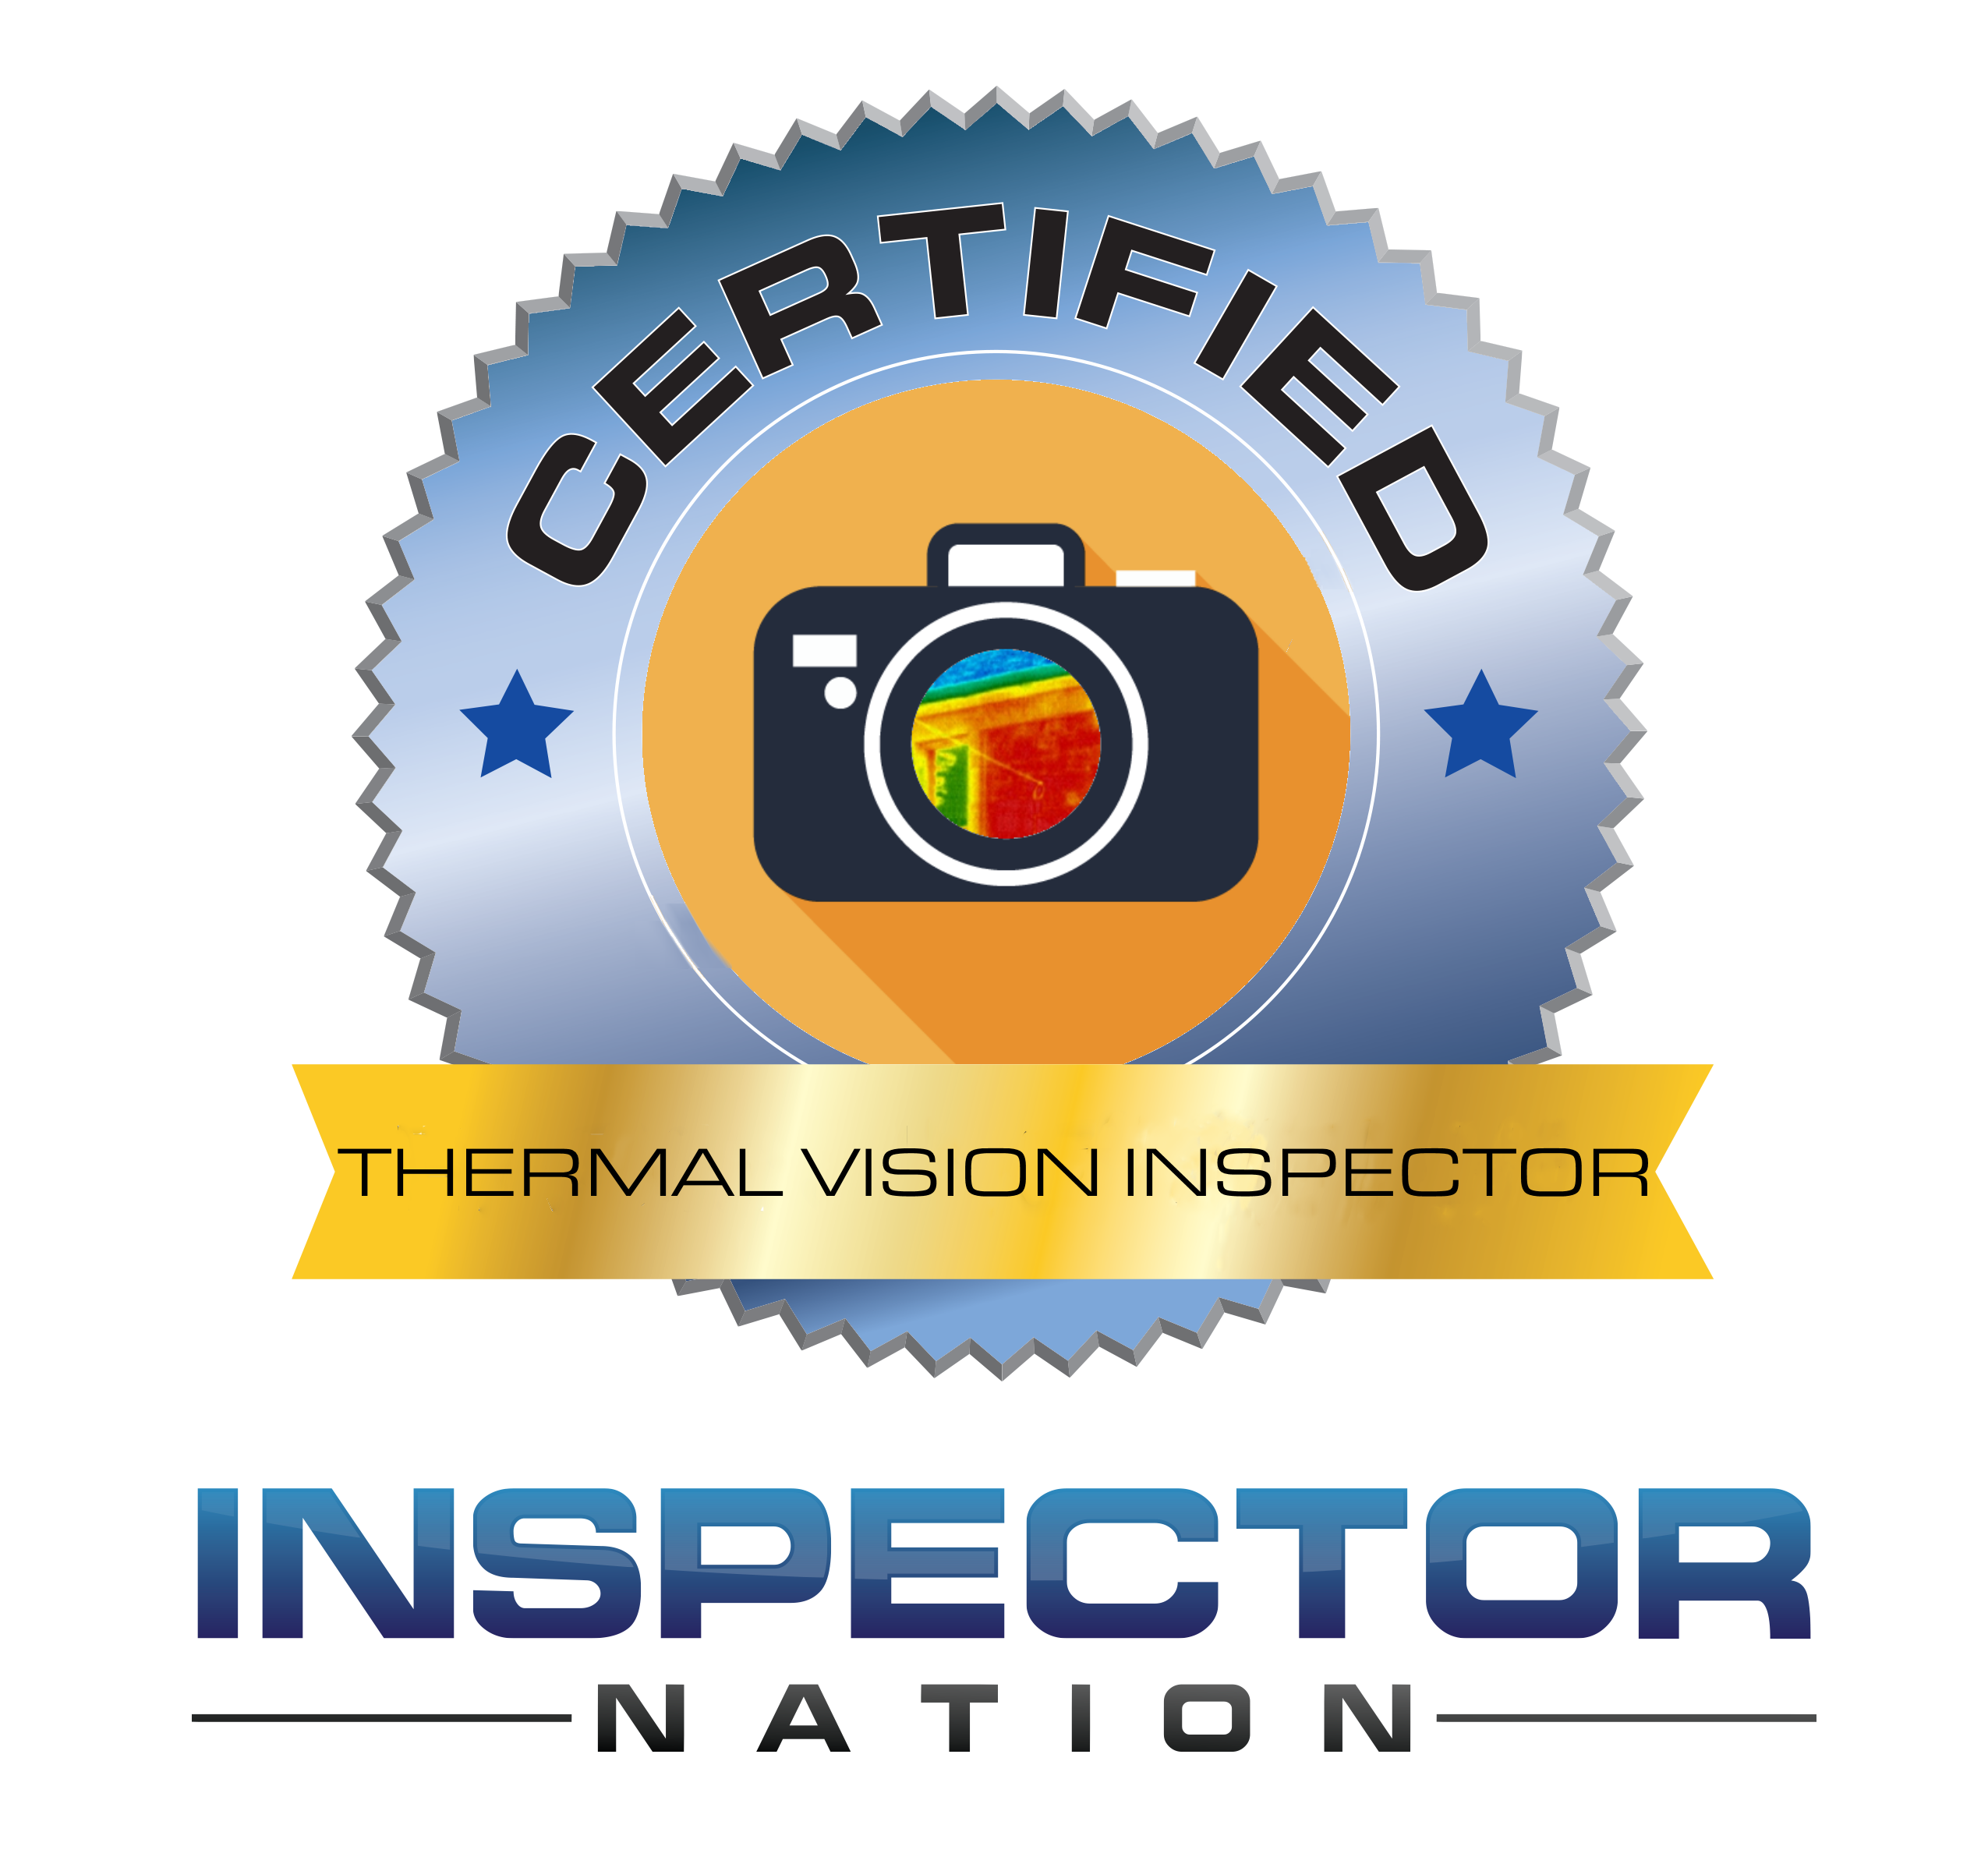 thermal vision and camera inspector inspector nation certified home inspector badge emblem icon